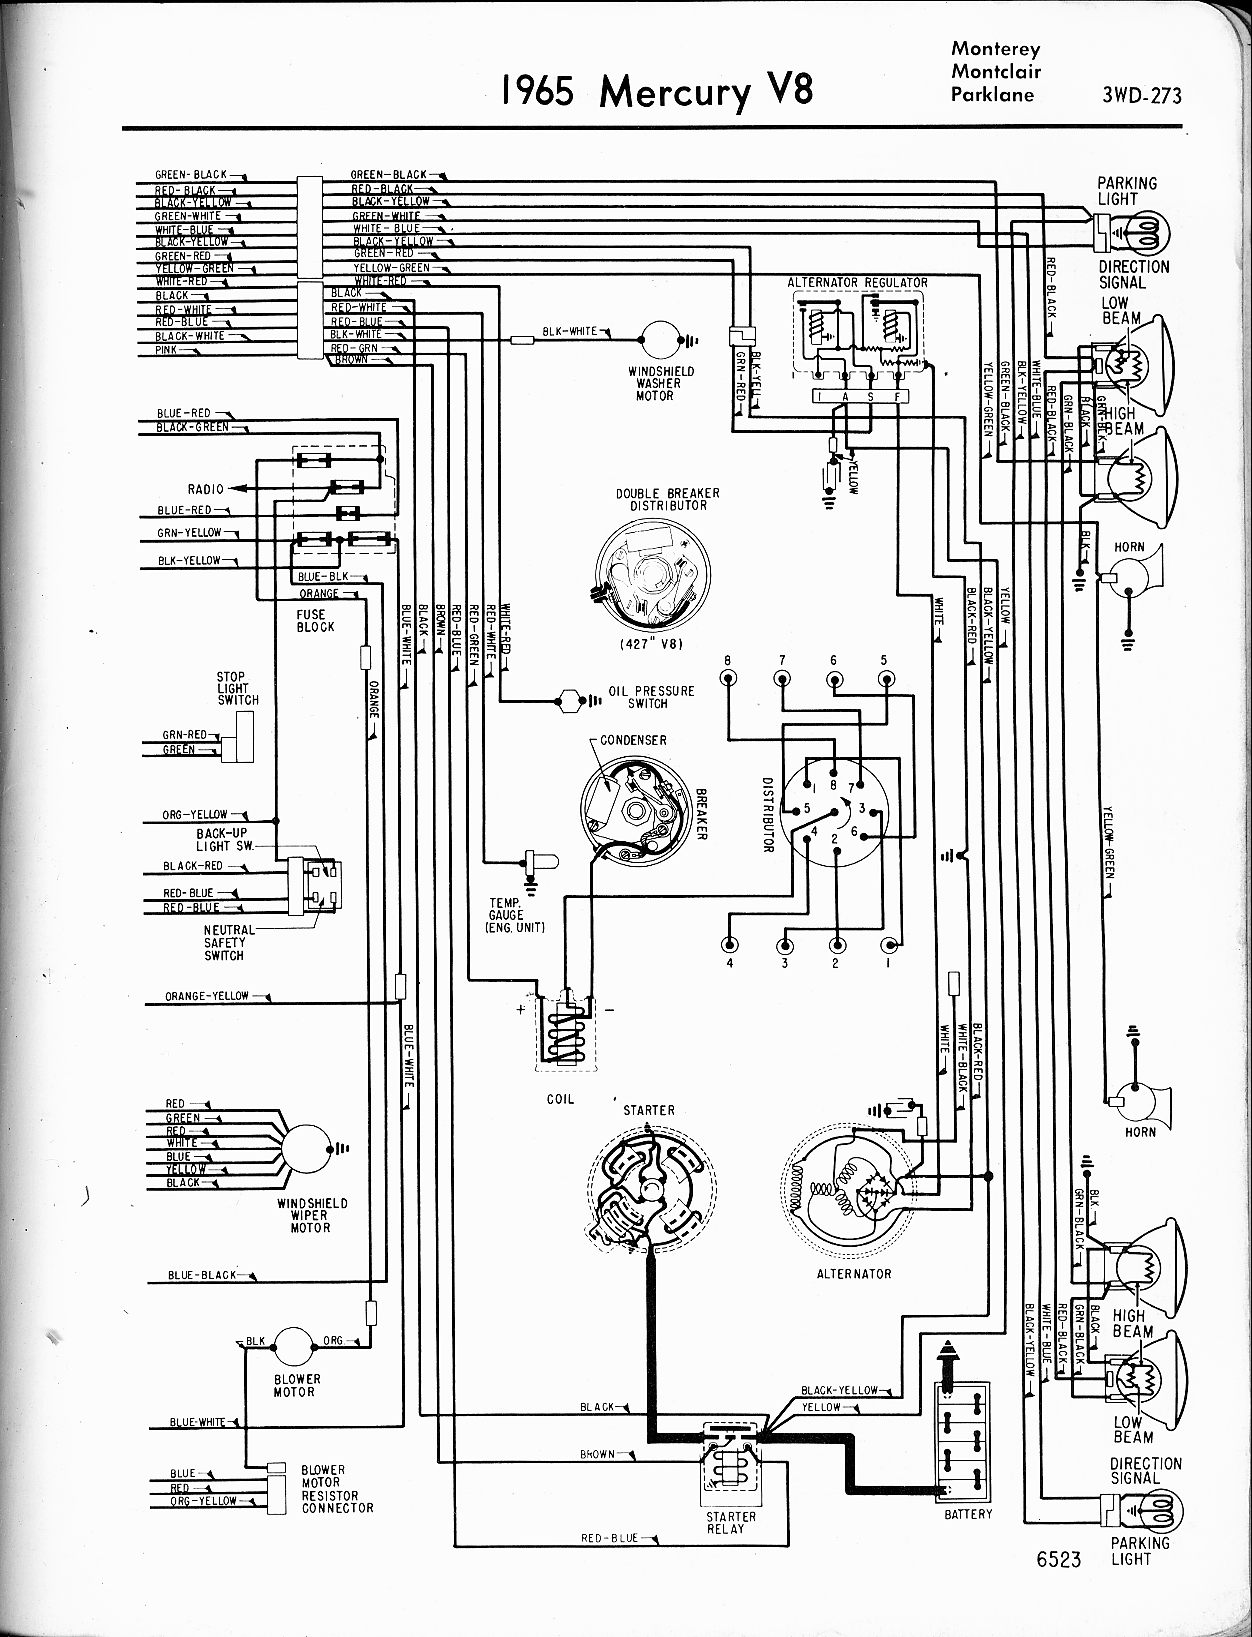 Mercury Wiring Diagrams The Old Car Manual Project Of 1961 6 1965 V8 Monterey Montclair Parklane Left Page